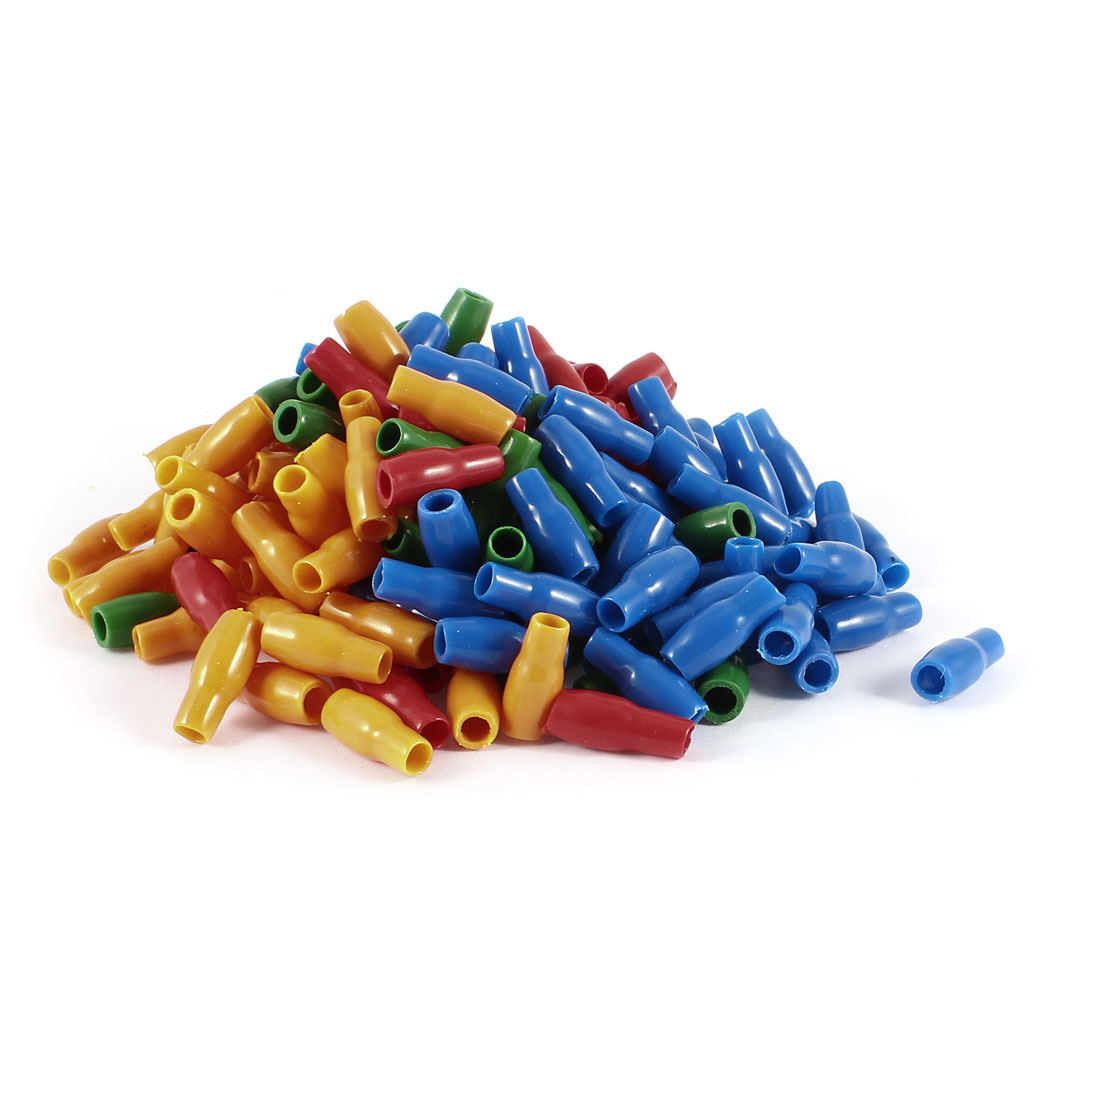 200 Pcs Soft PVC Wire V-3.5 4mm2 Crimp Terminal End Insulated Sleeves Cover Green Red Blue Orange